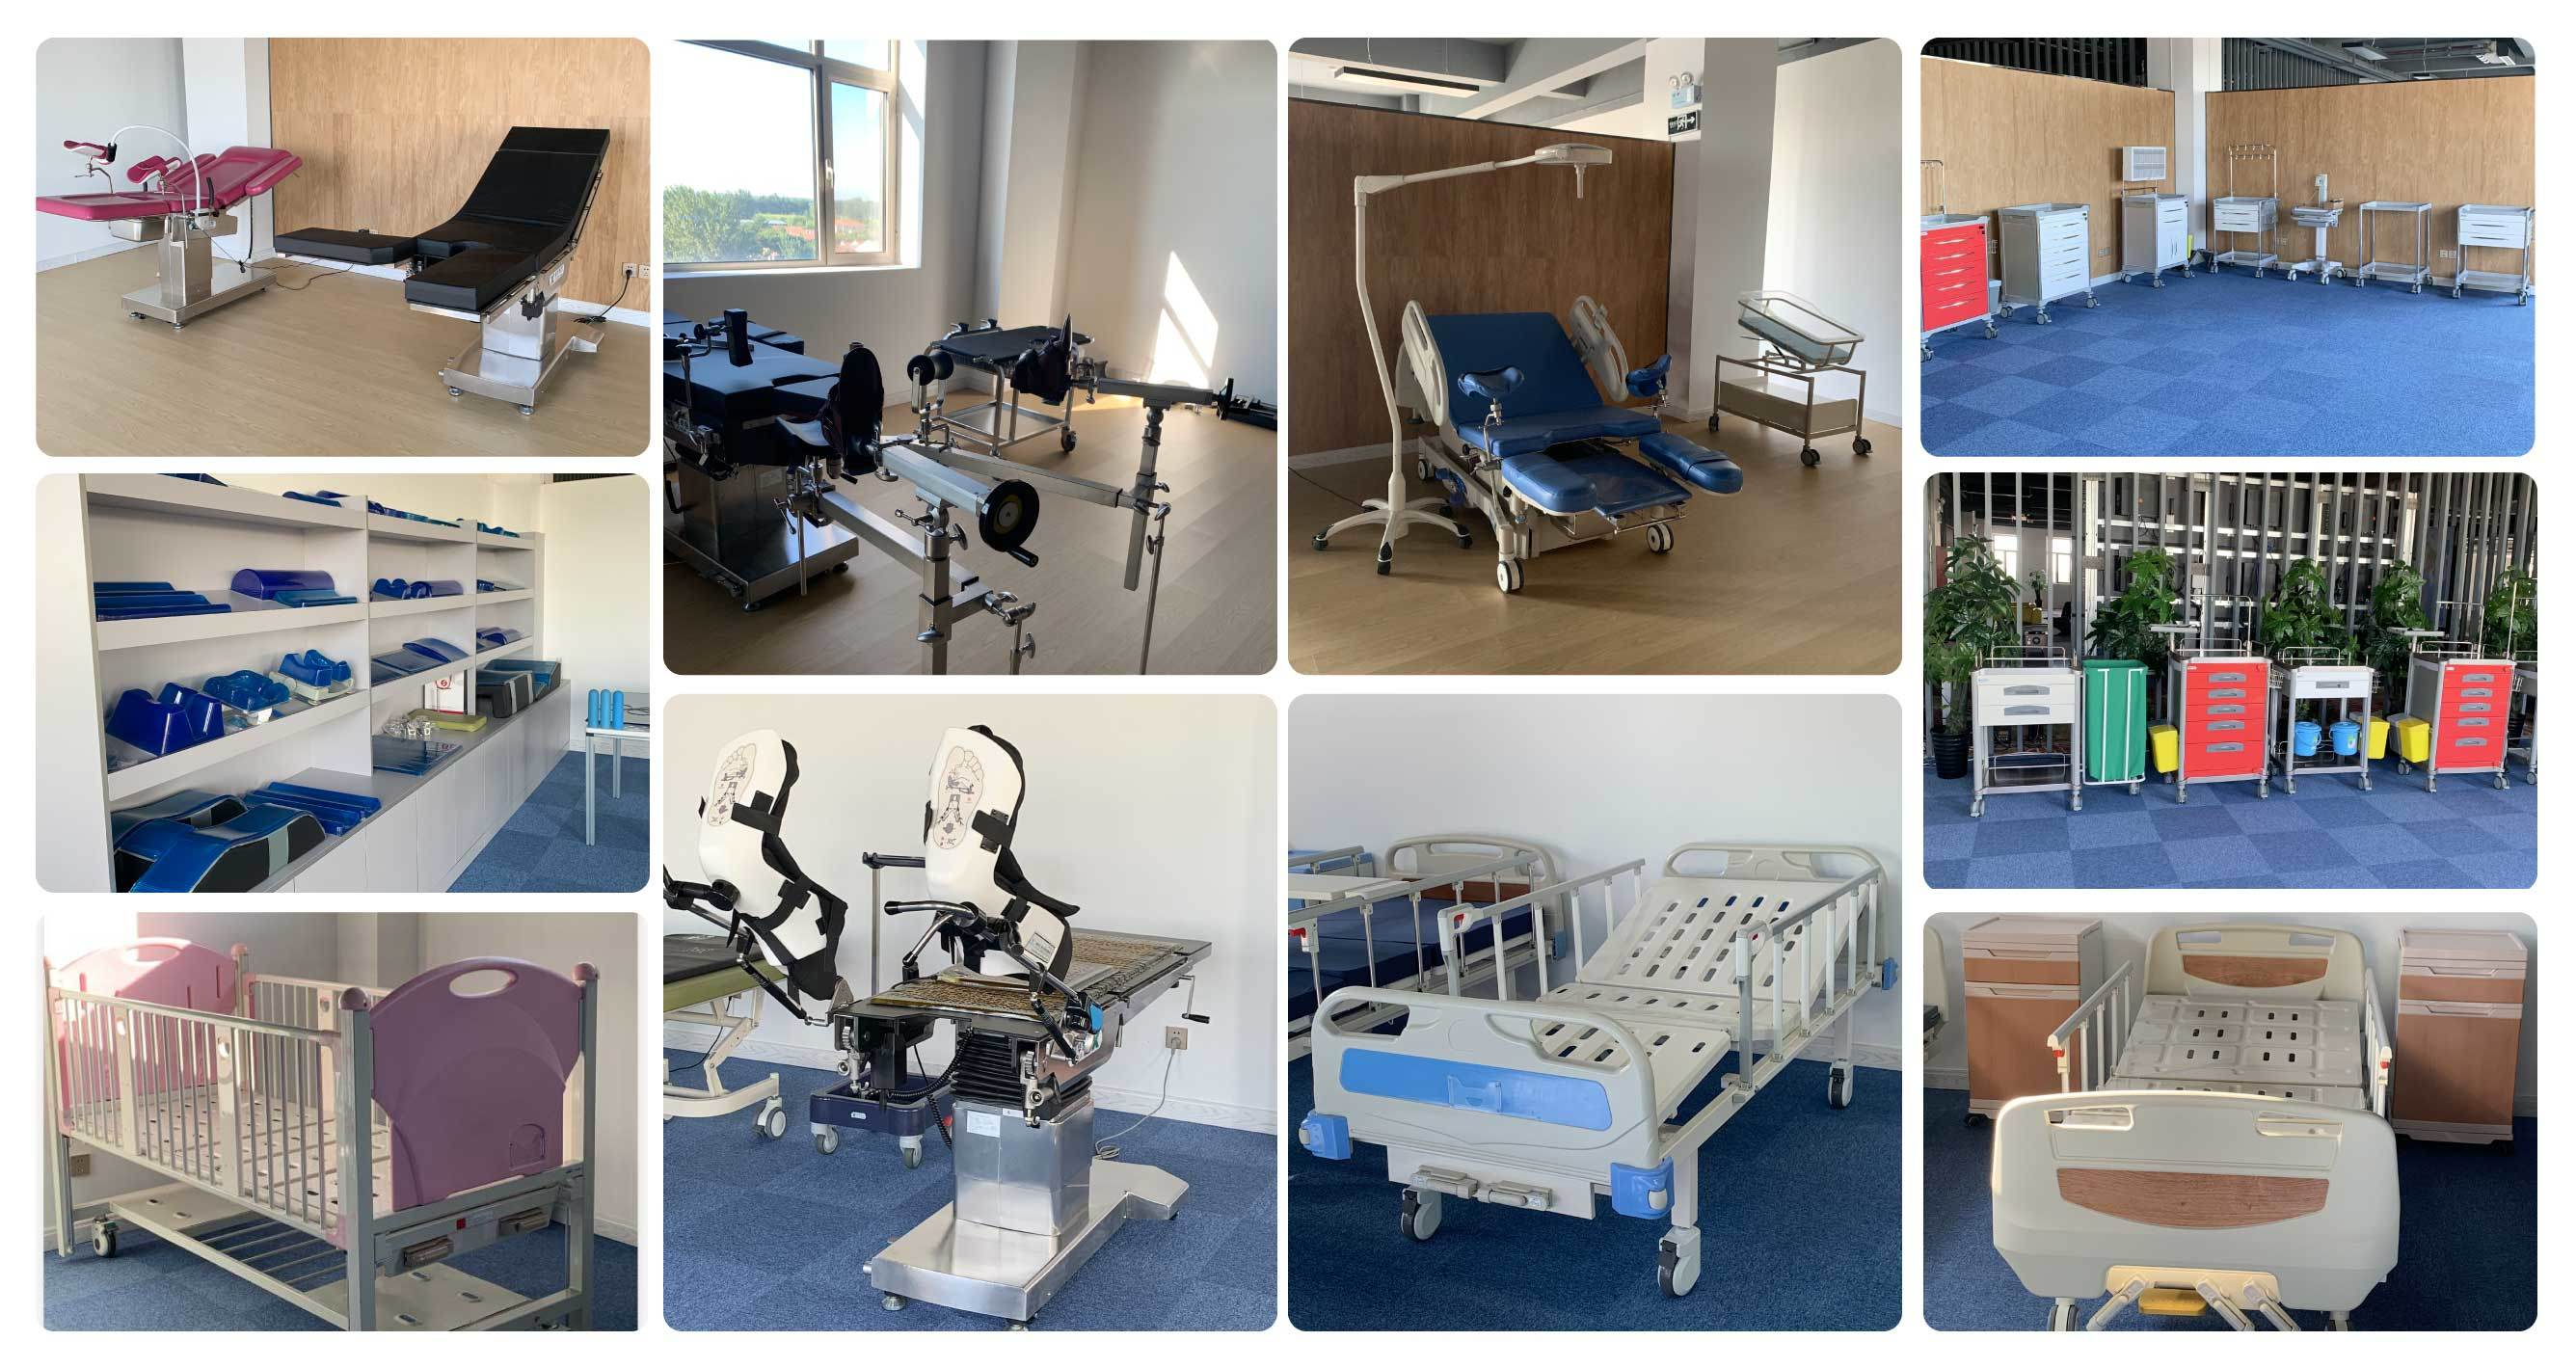 Intelligent Electric Hospital Delivery Bed for Ldr Room